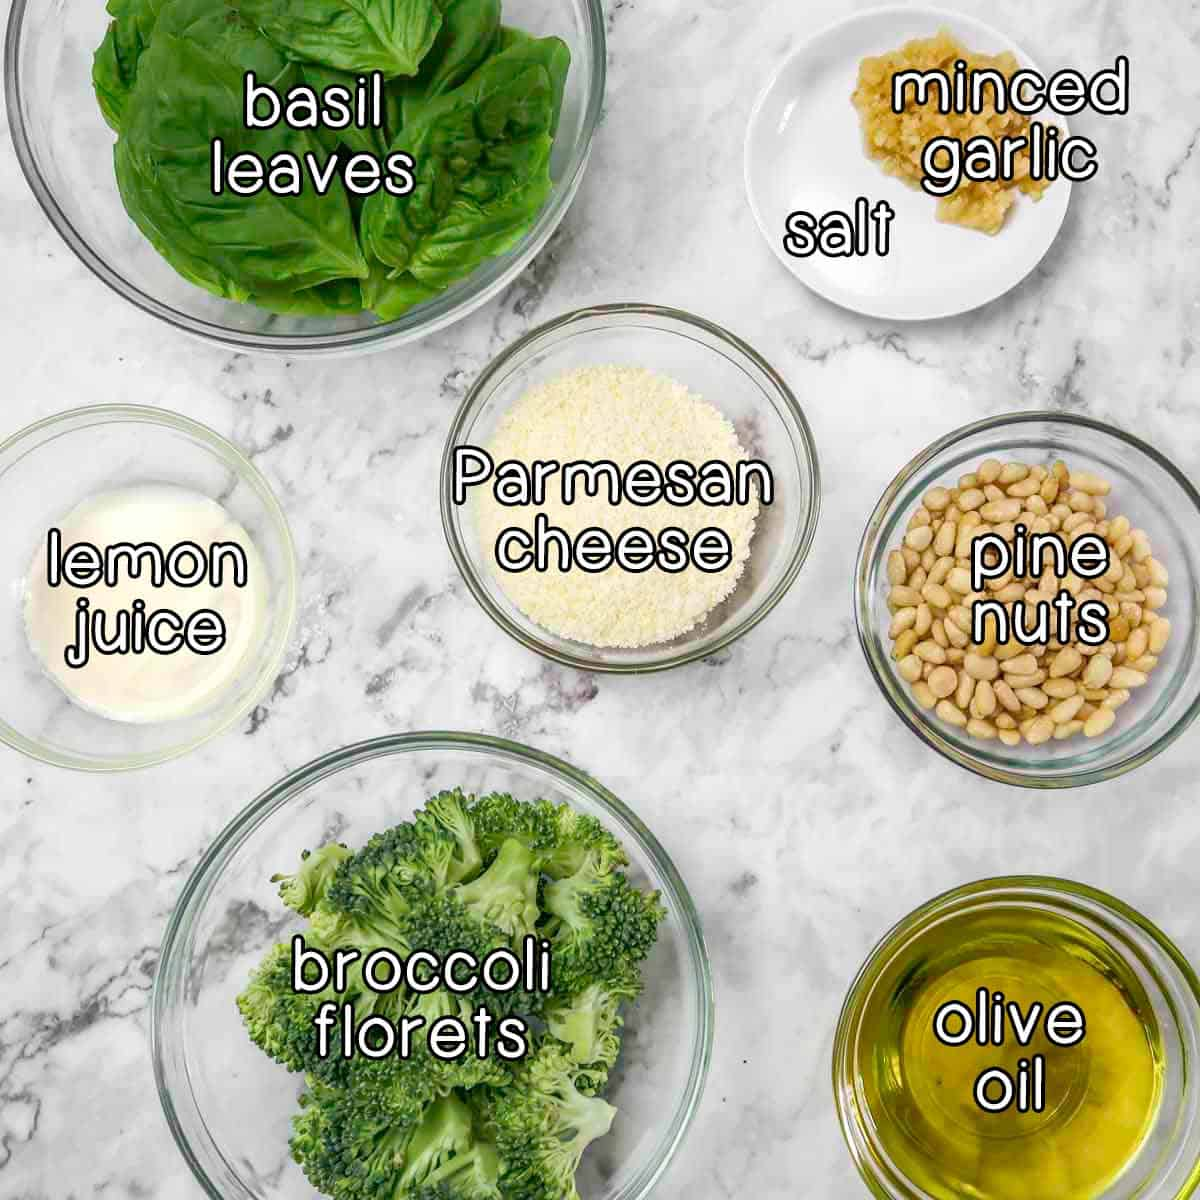 Overhead shot of ingredients- Basil leaves, minced garlic, salt, parmesan cheese, lemon juice, pine nuts, broccoli florets, and olive oil.